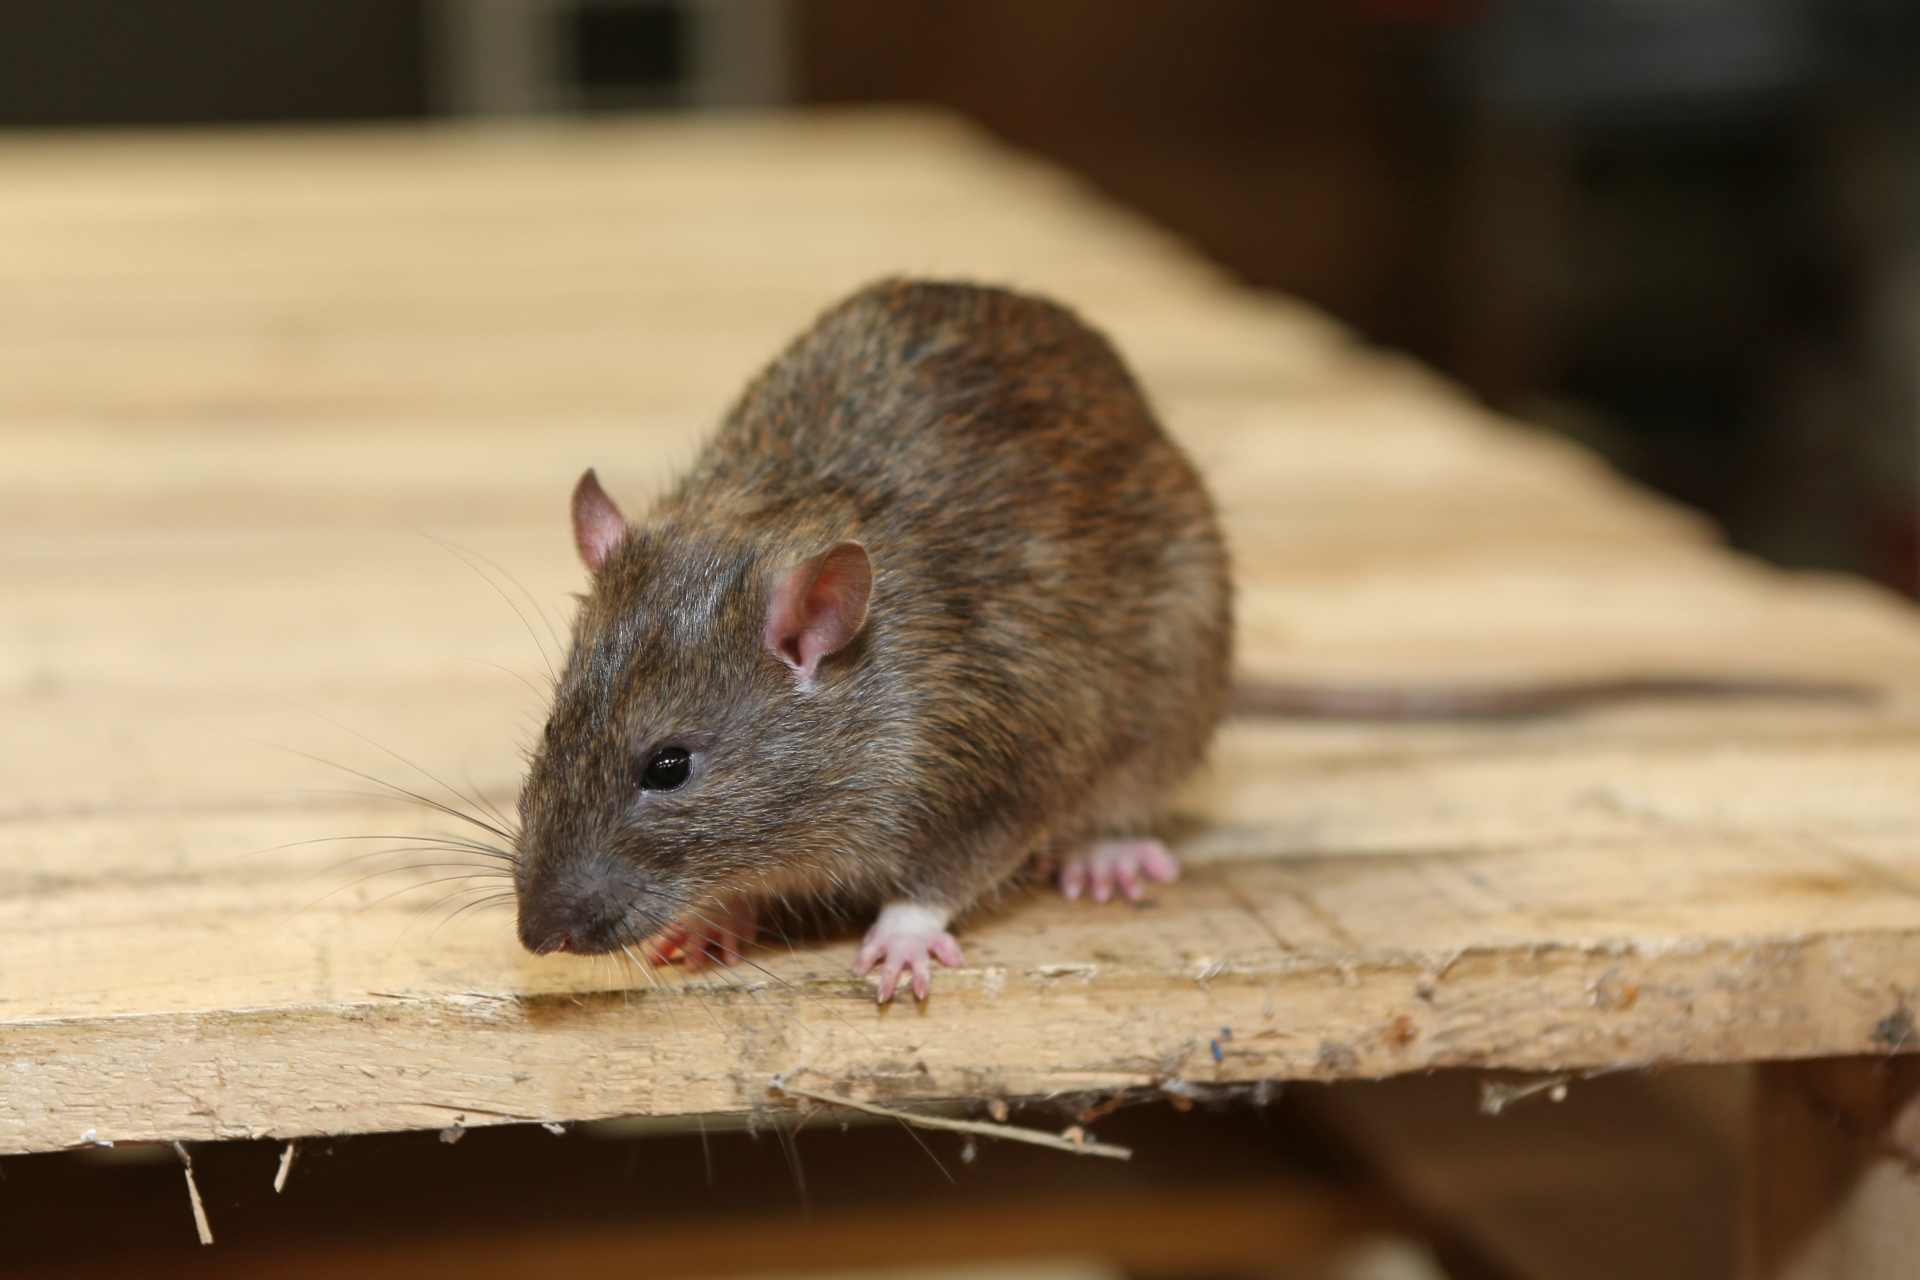 Rat Infestation, Pest Control in Walton-on-Thames, Hersham, KT12. Call Now 020 8166 9746